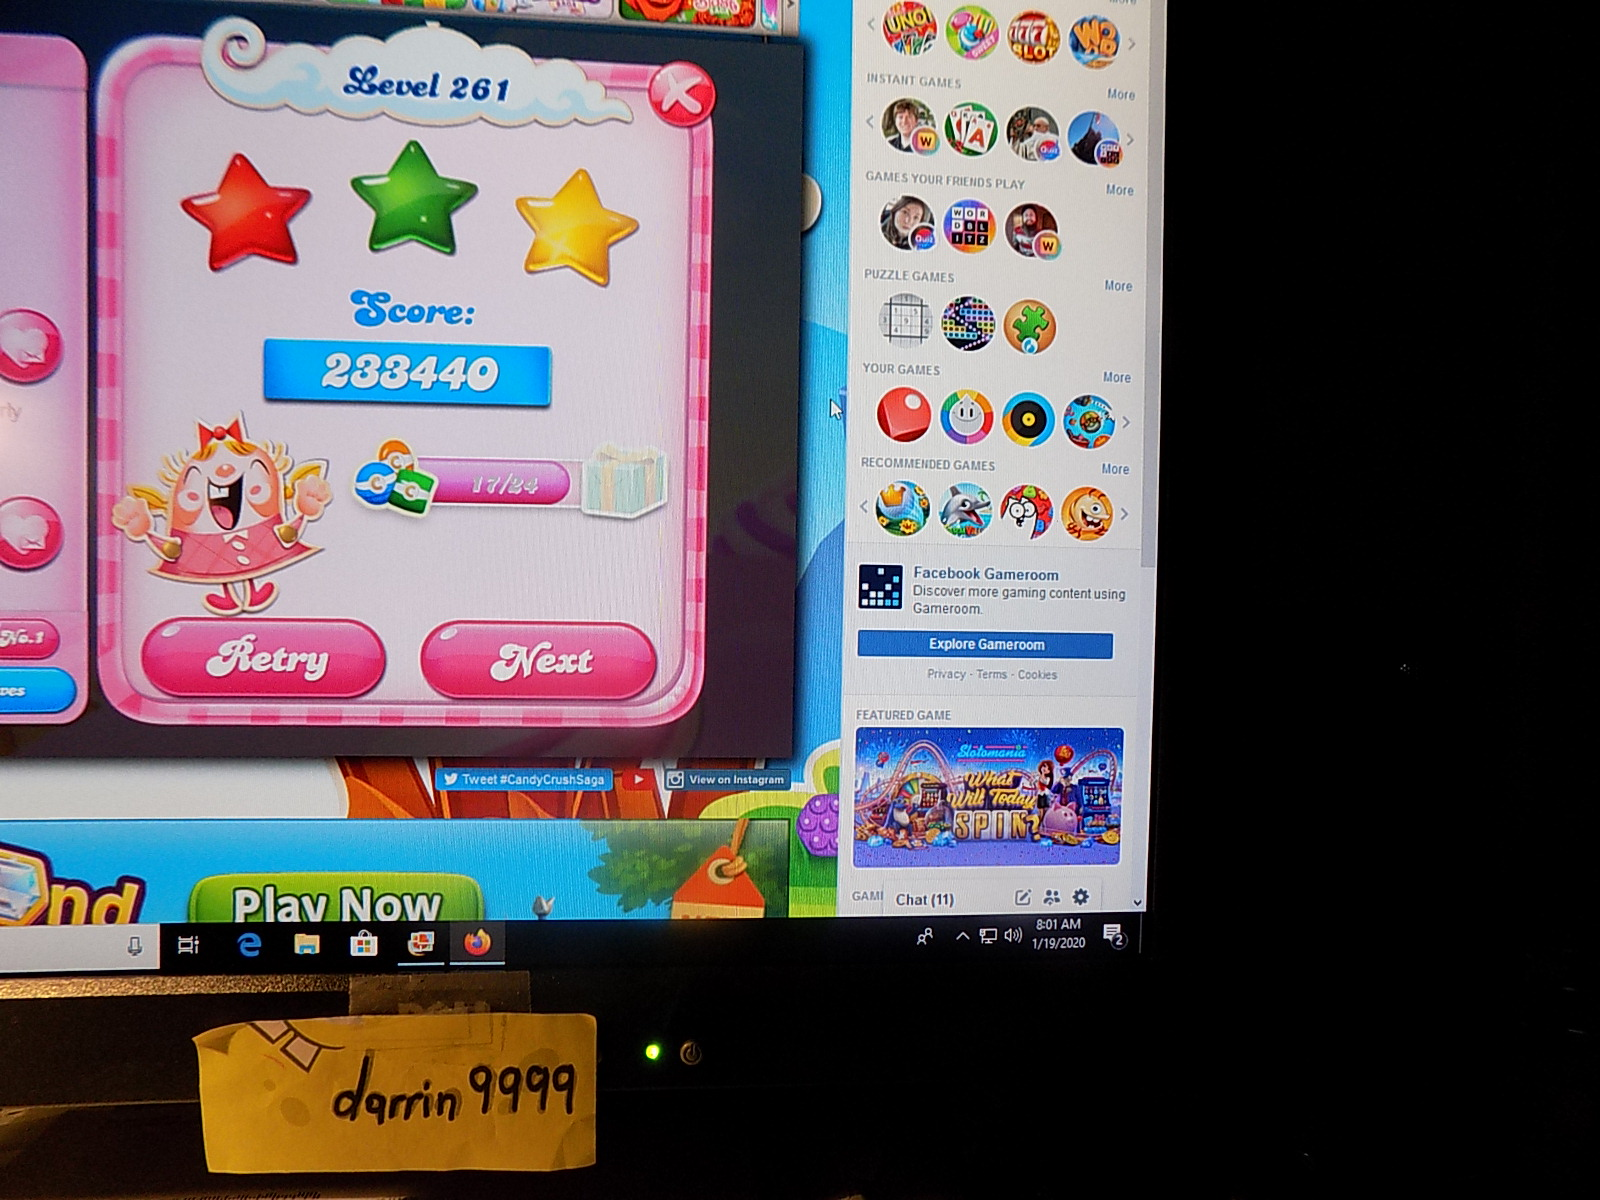 Candy Crush Saga: Level 261 233,440 points